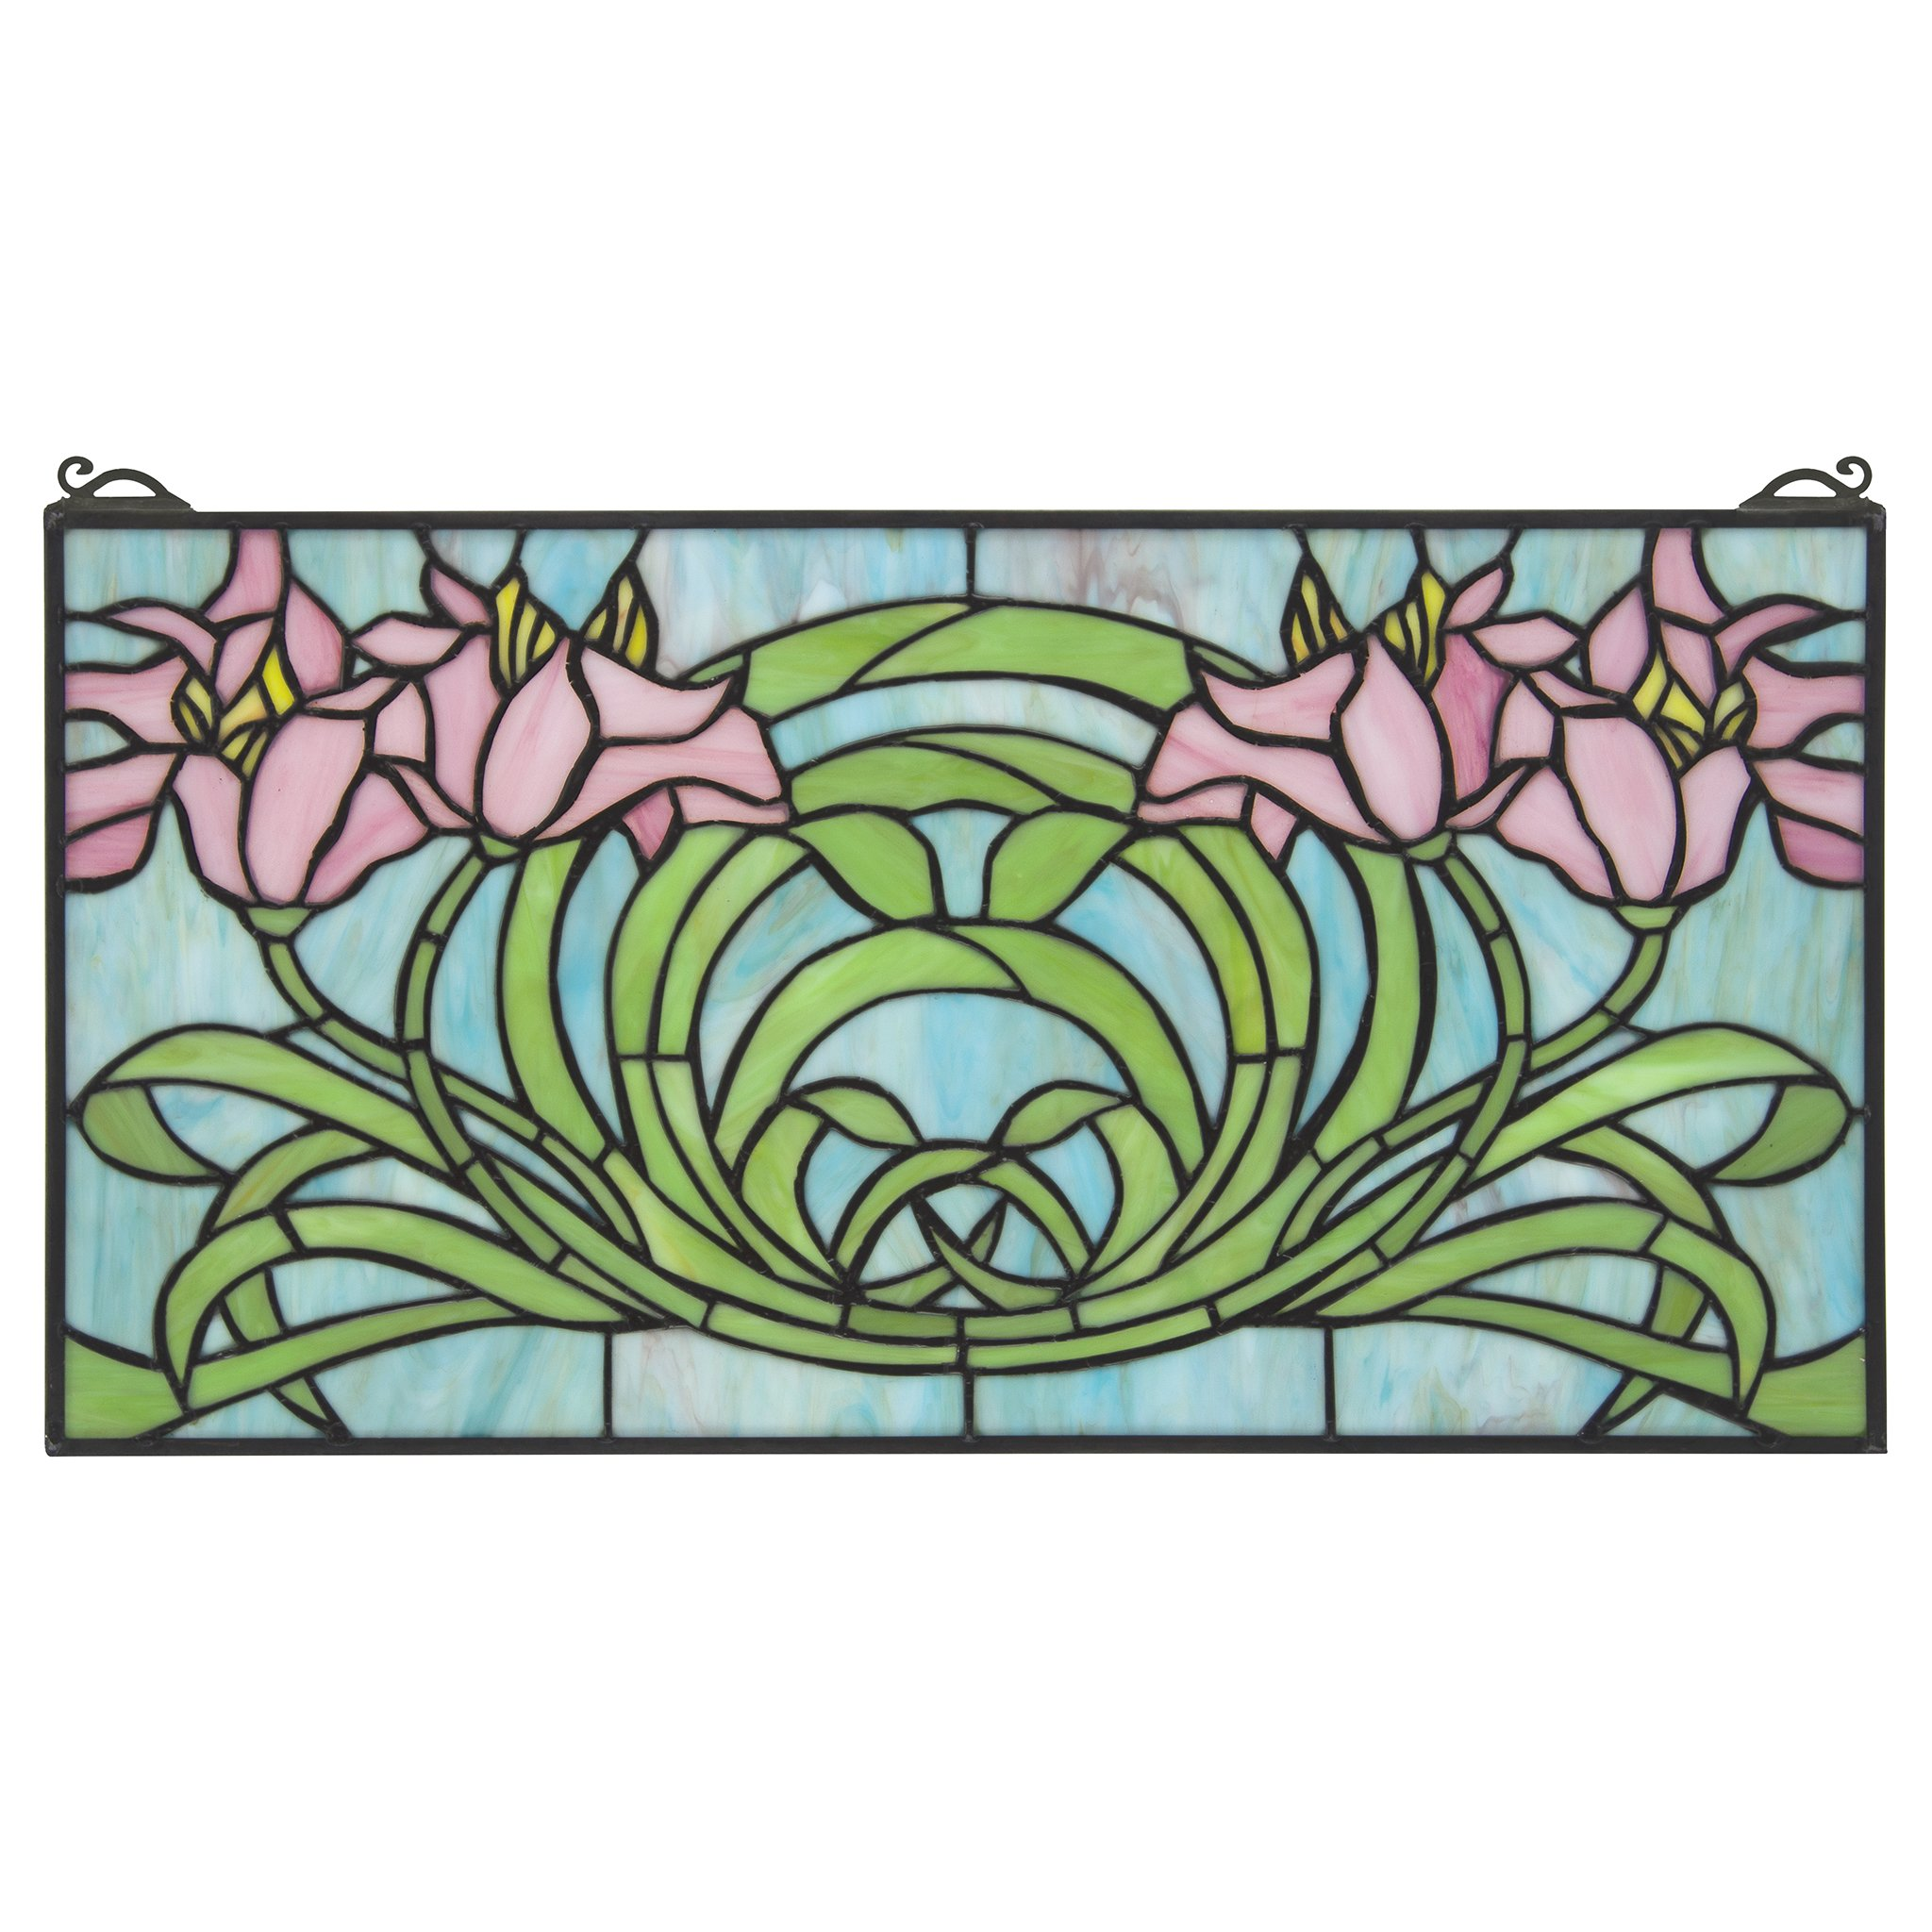 Stained Glass Panel - Beaucoup de Fleurs (Lots of Flowers) Stained Glass Window Hangings - Window Treatments